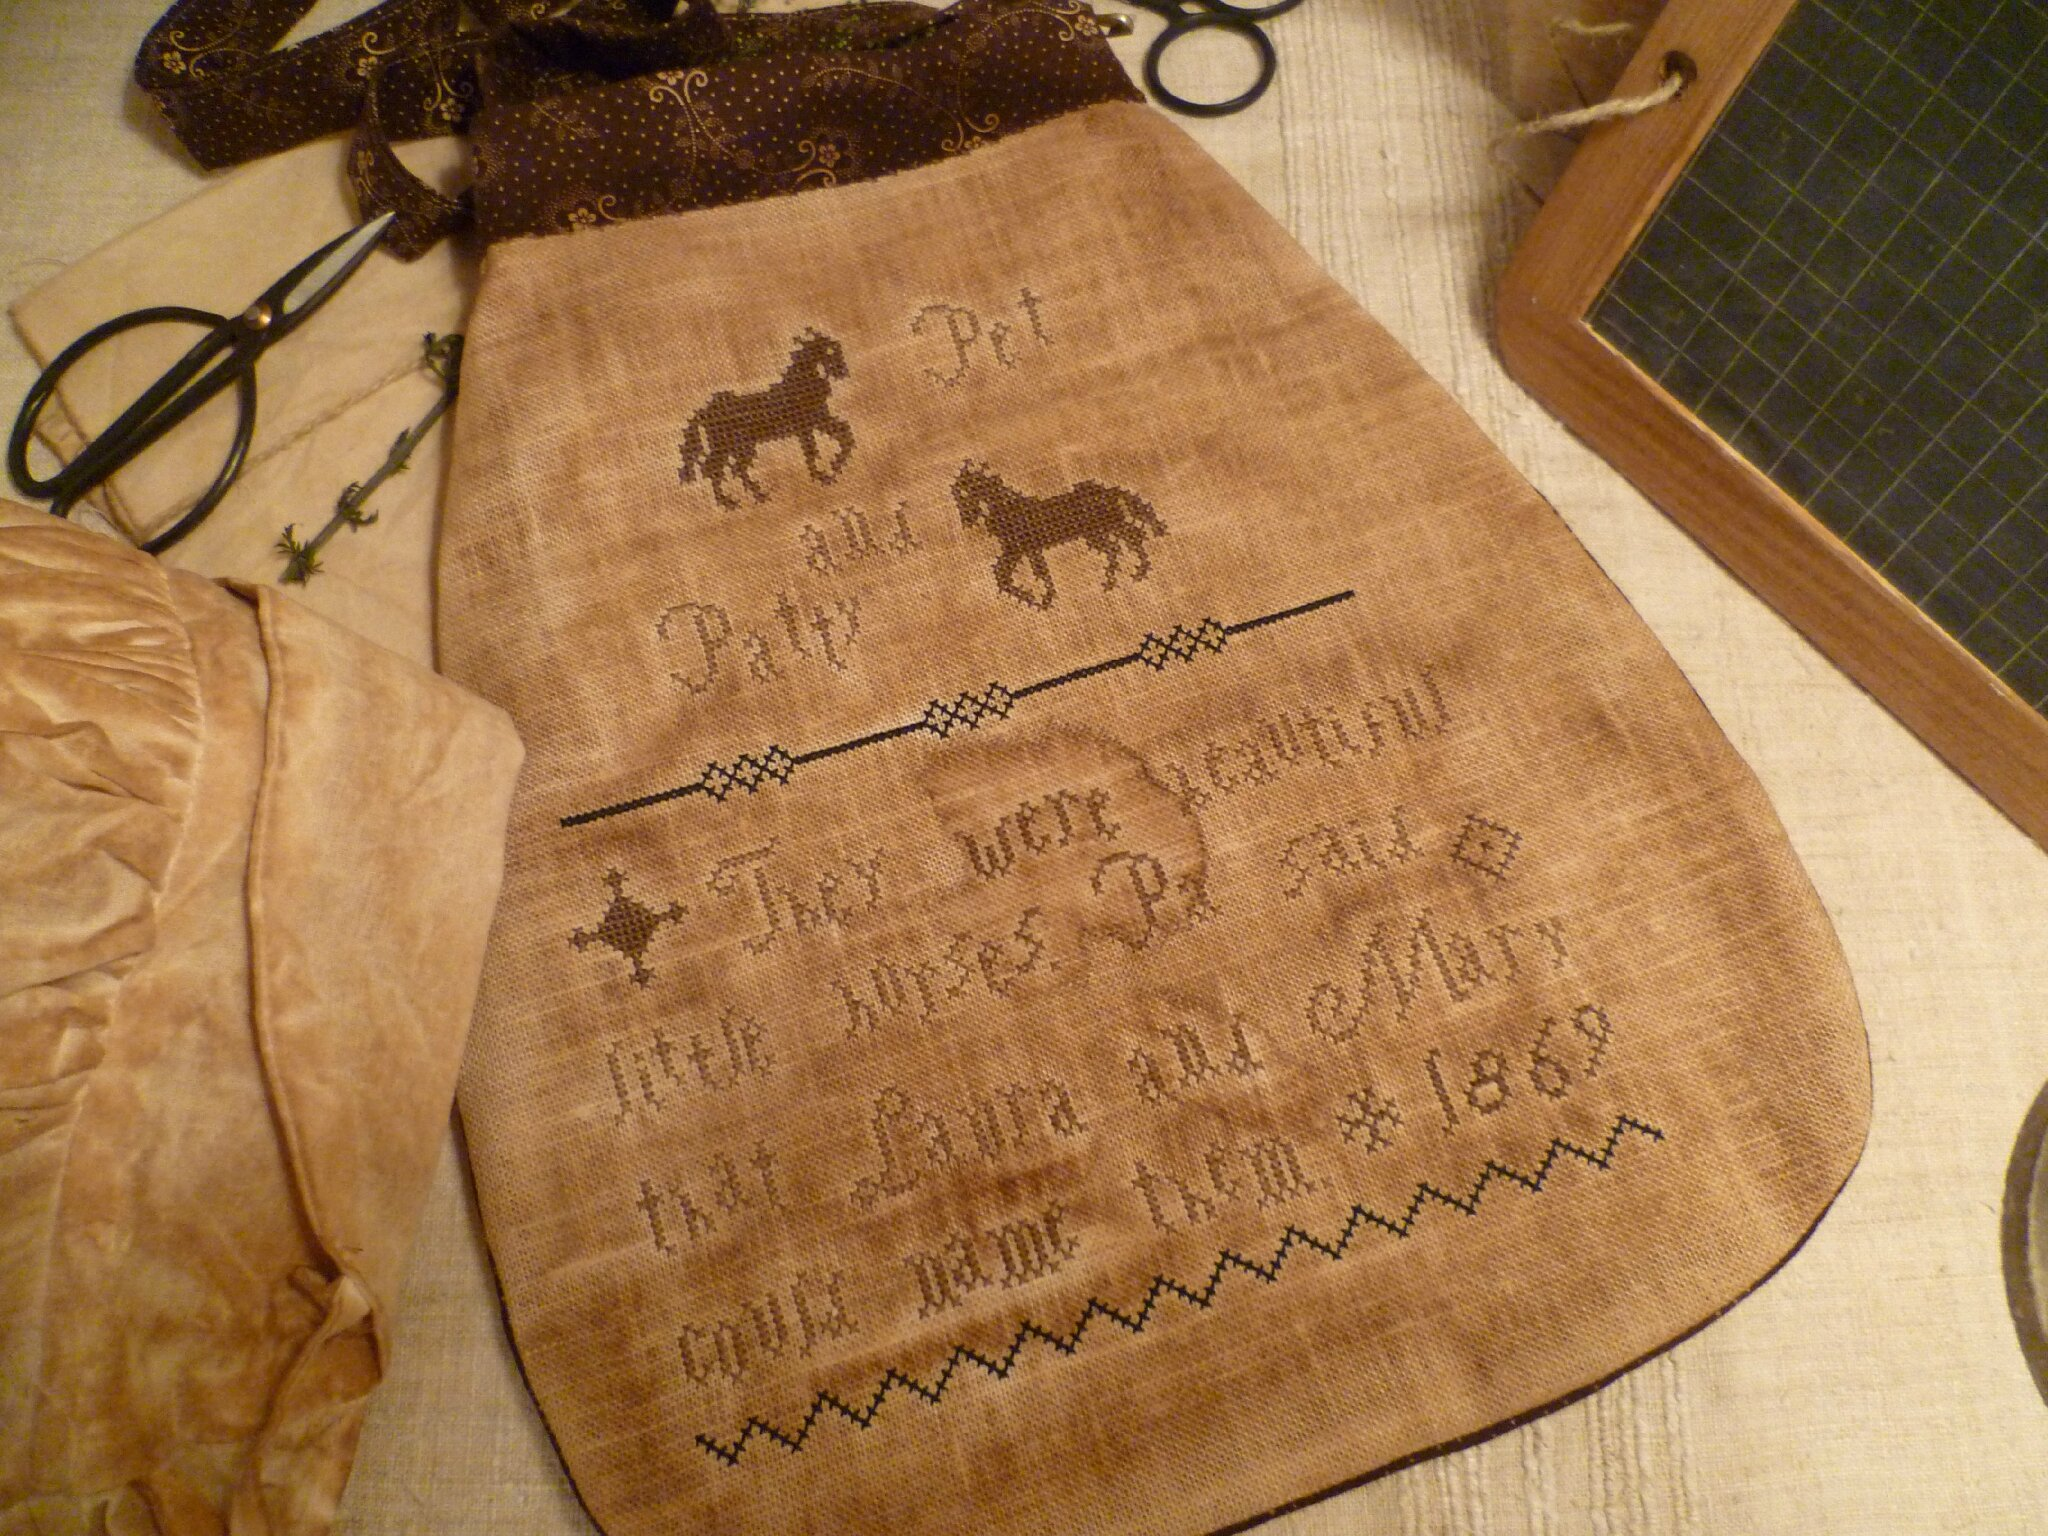 HORSES THEME: They were beautiful horses POUCH ... US $ 10.50